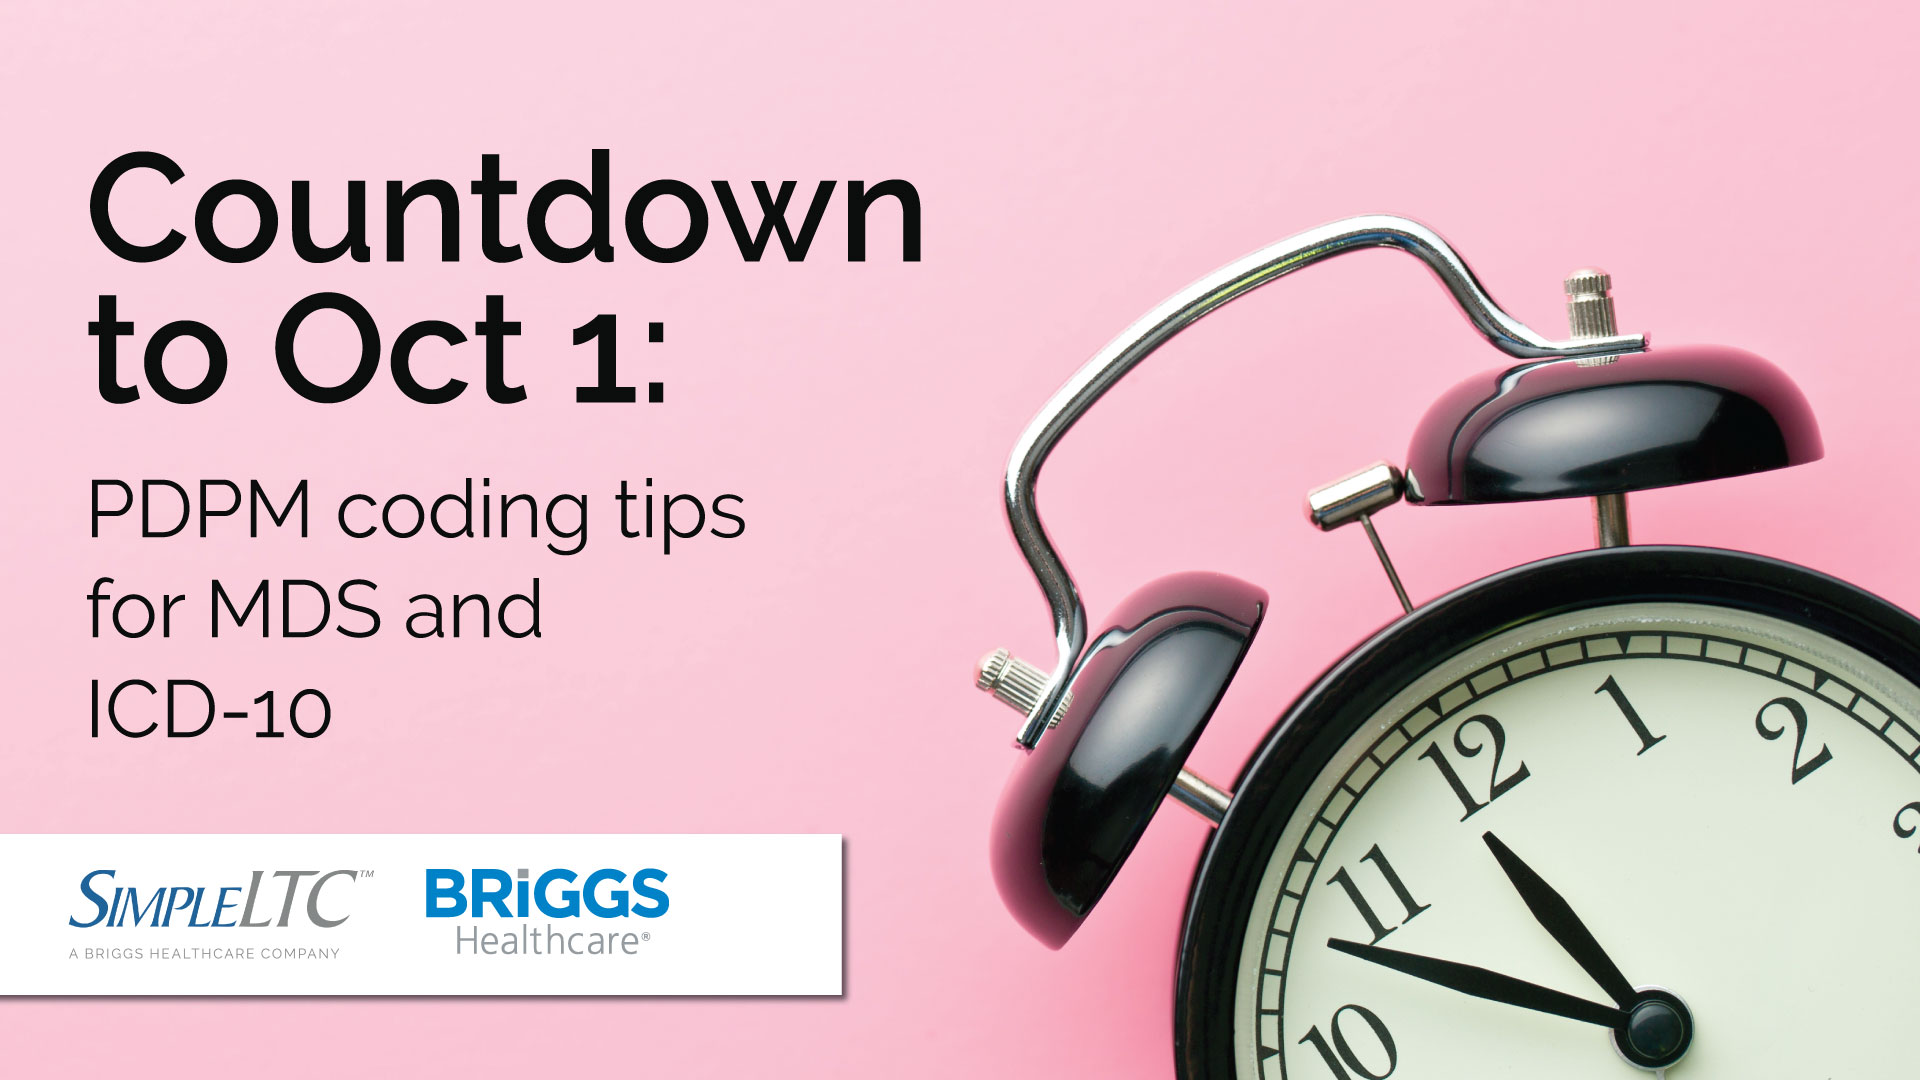 Countdown to Oct. 1: PDPM coding tips for MDS and ICD-10